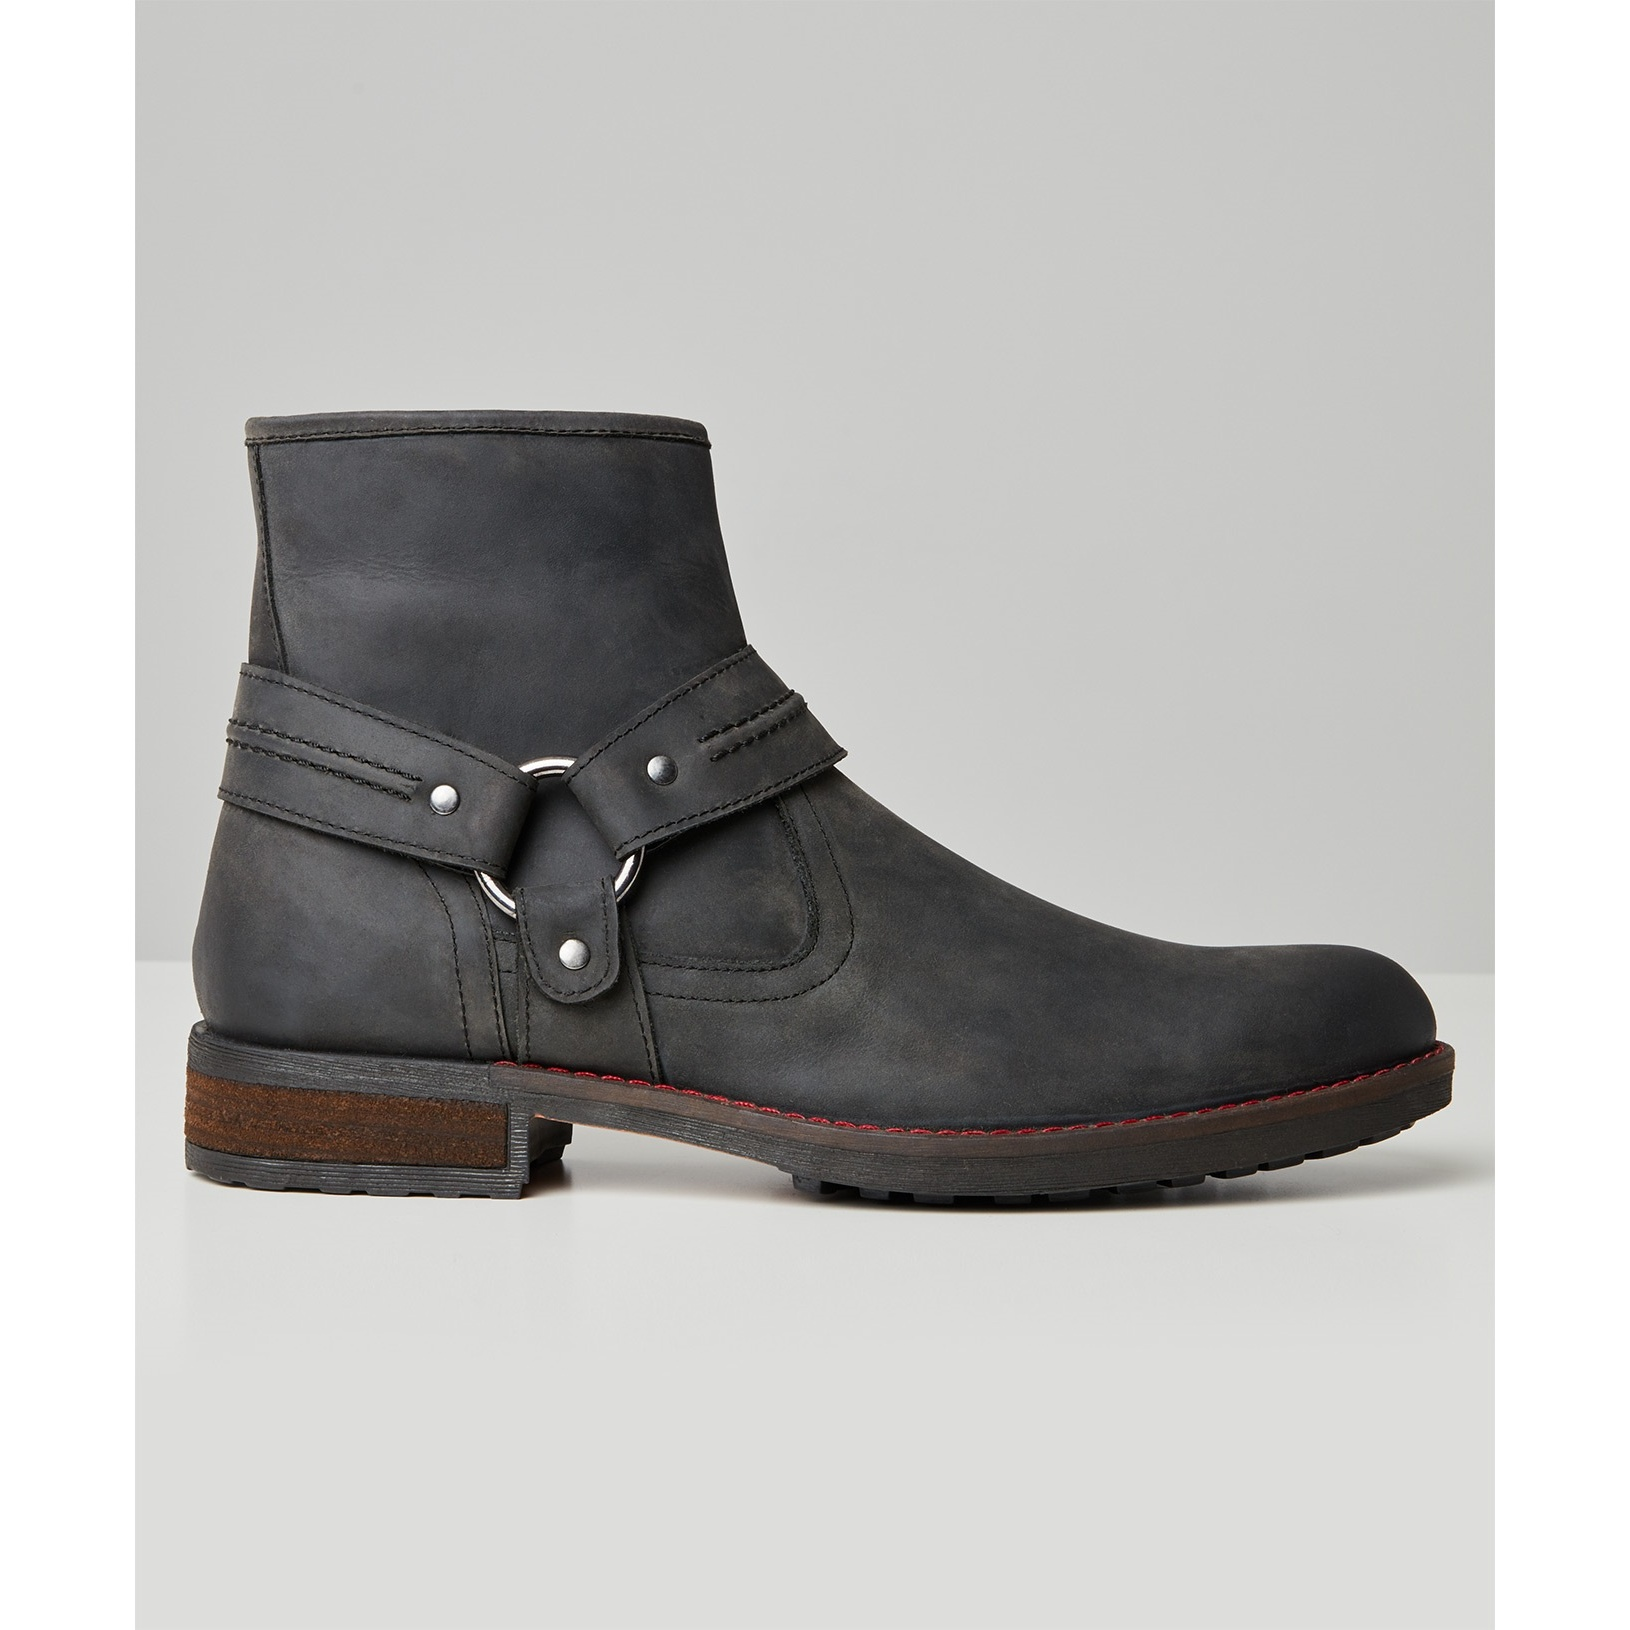 Joe-Browns-Bottines-en-cuir-HOUSTON-Homme-JB688 miniature 8